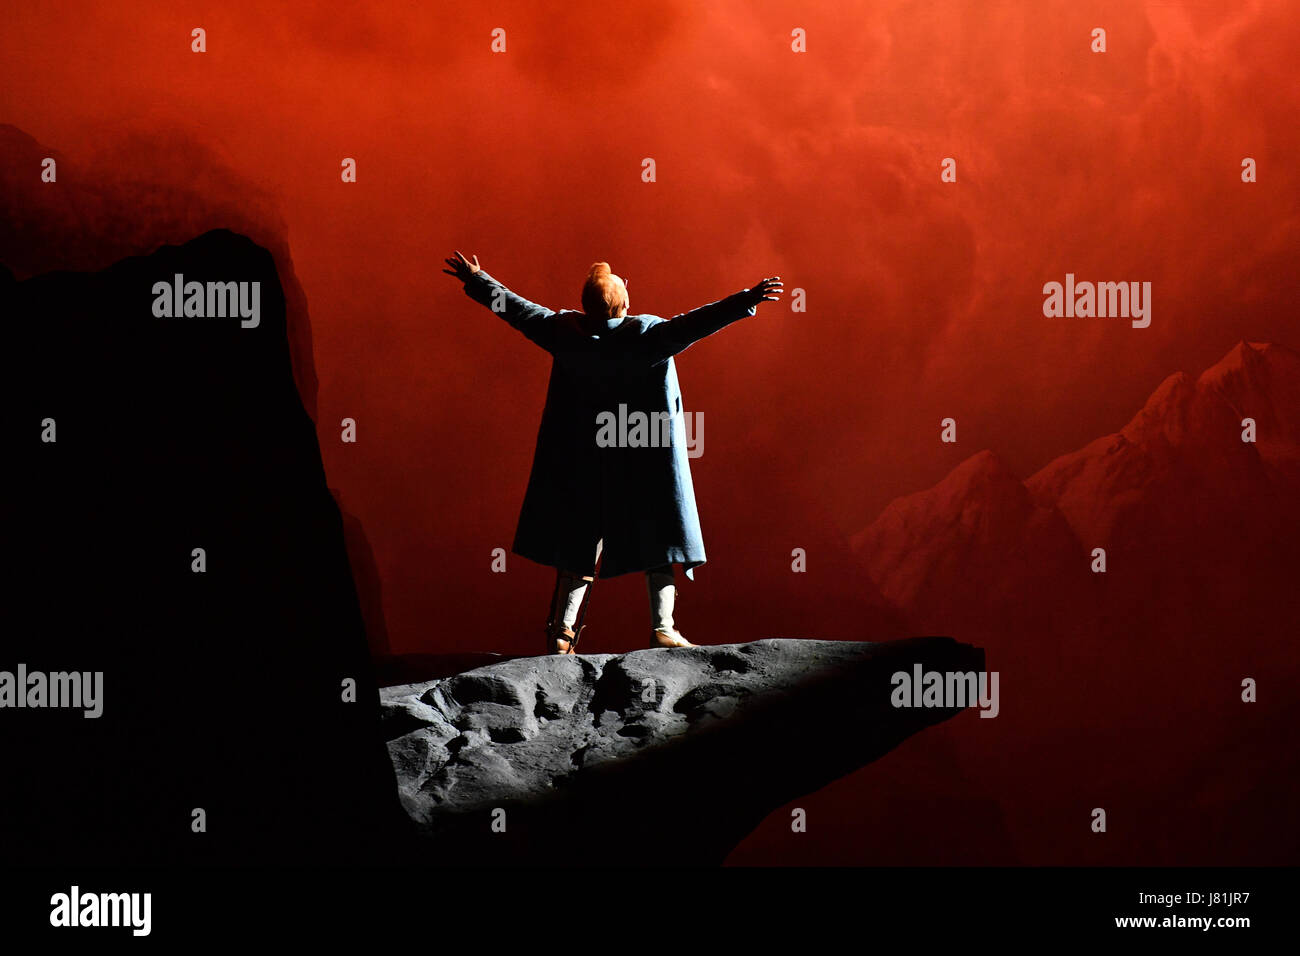 Berlin, Germany. 23rd May, 2017. Tenor Charles Castronovo portraying Faust performs on stage during a photocall - Stock Image